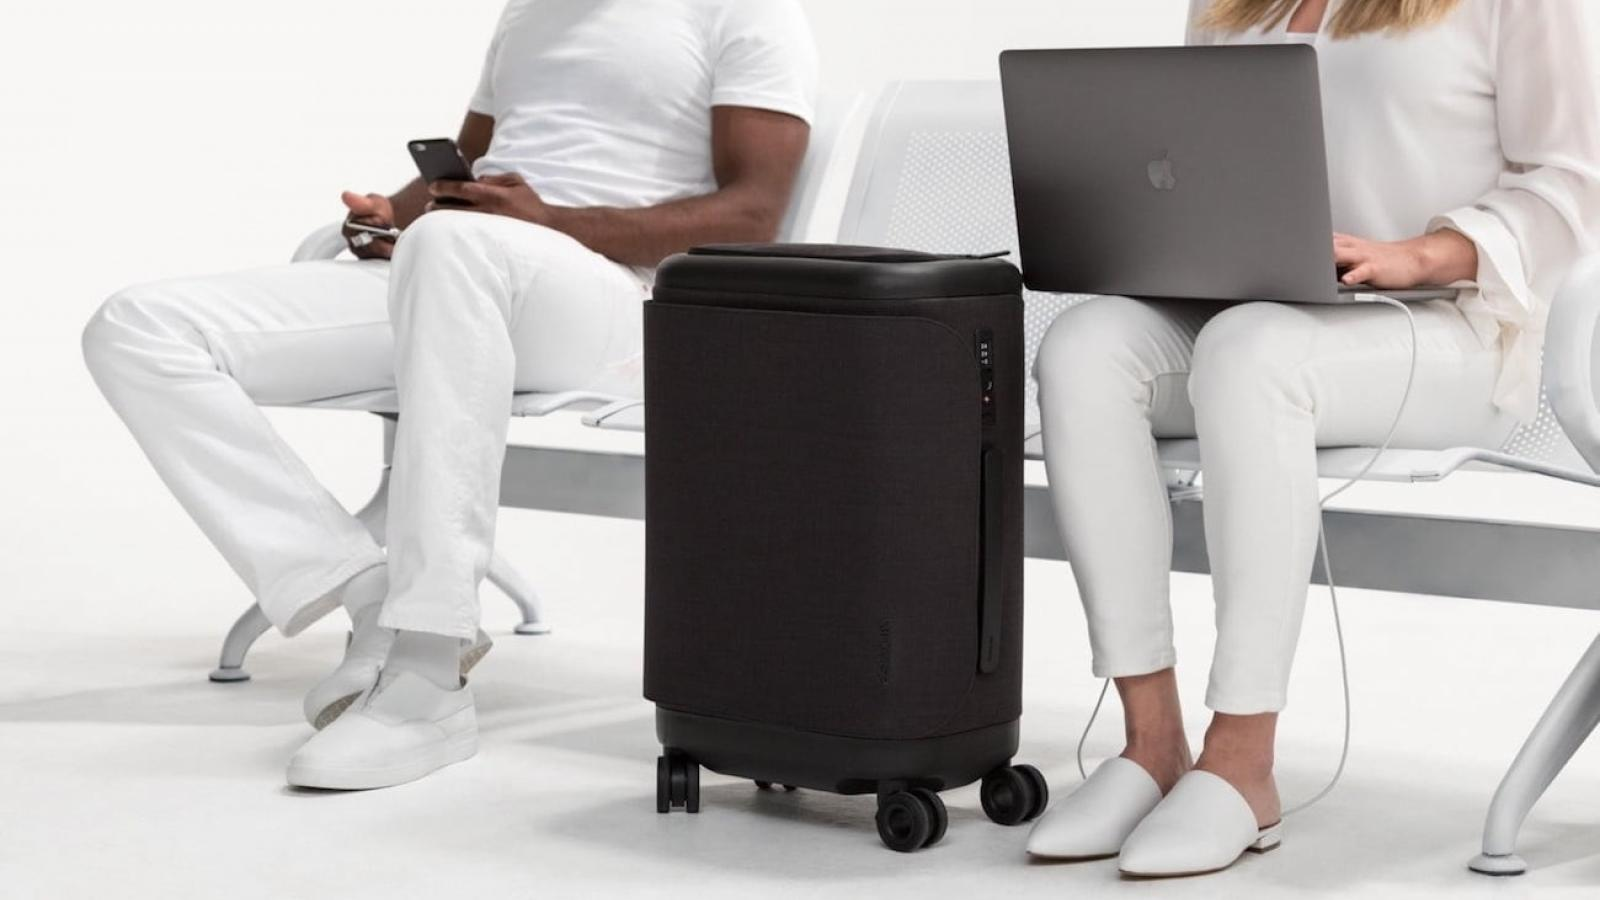 The Perfect Office - Incase ProConnected Smart Luggage, Google Home Max and more